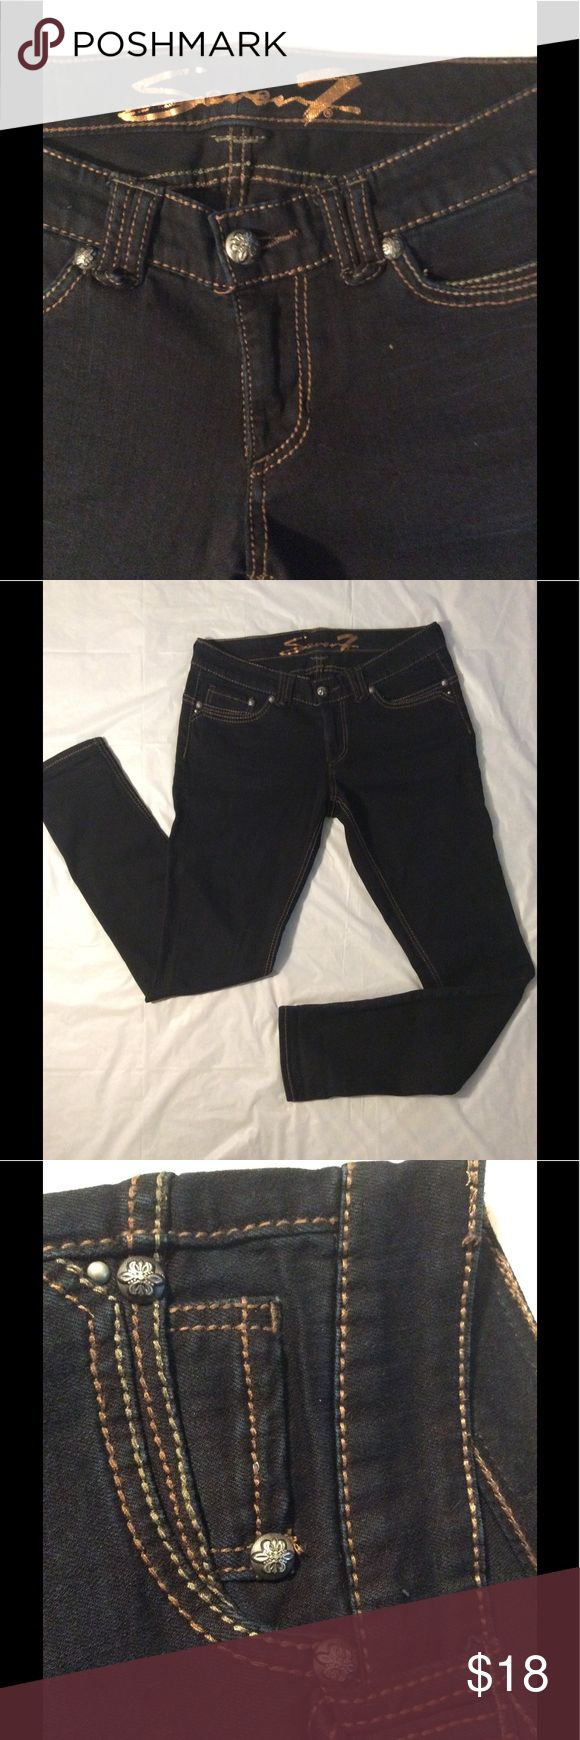 Sevens Jeans In good condition. No fade. Smoke free. Seven7 Jeans Skinny